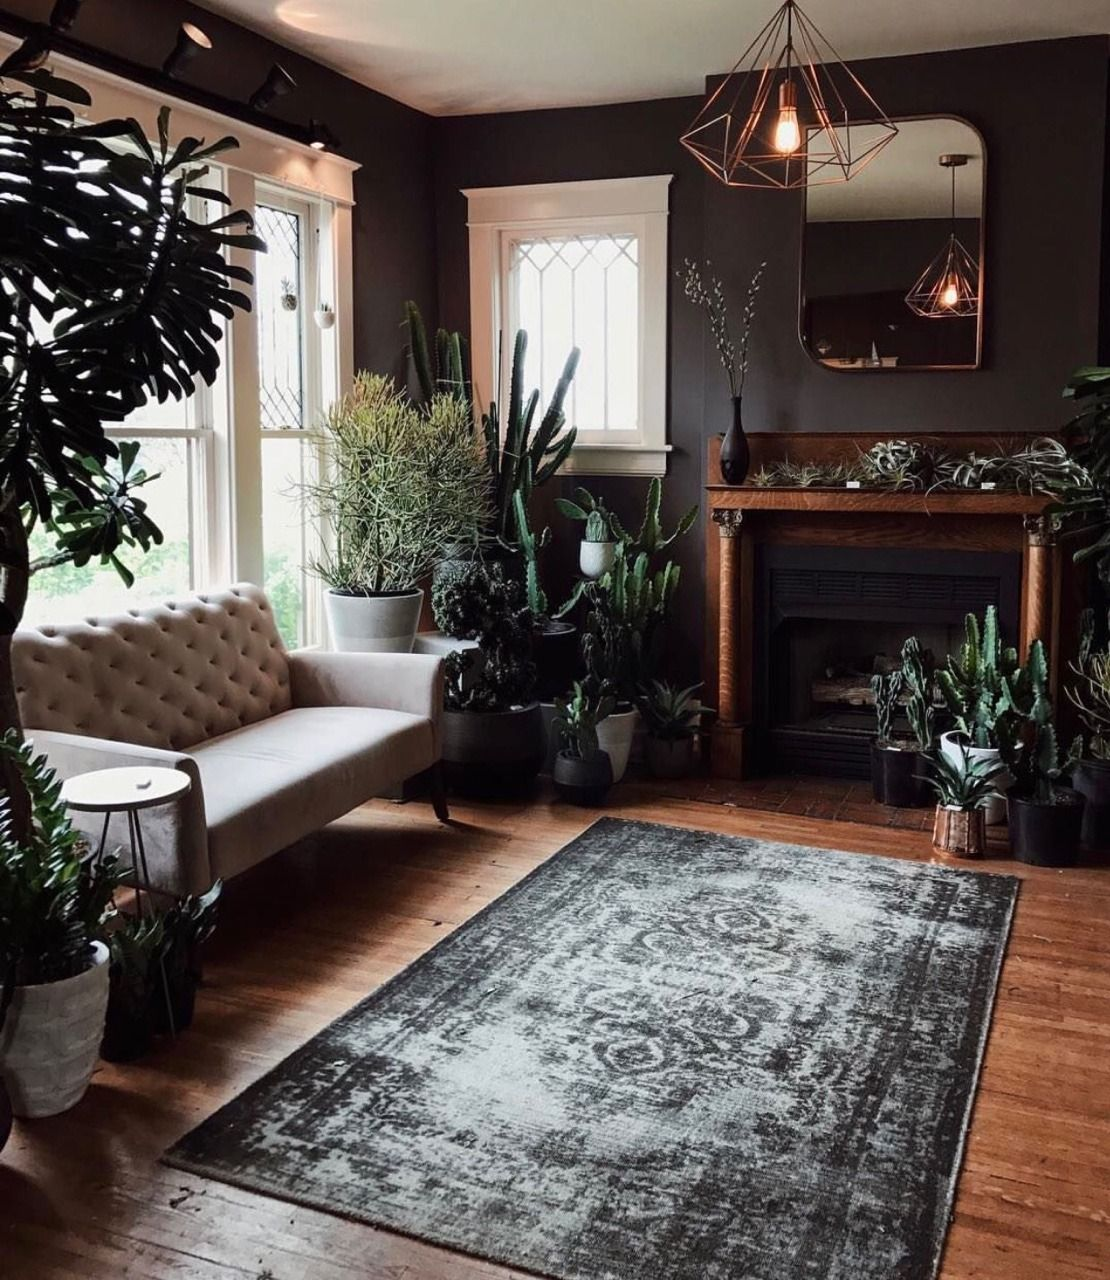 What A Lovely Living Room So Many Plants I Love A Room That Is Filled With Natural Light Succulents And C Rumudsmykning Vaerelsesindretning Indretningsideer Lovely living room decor